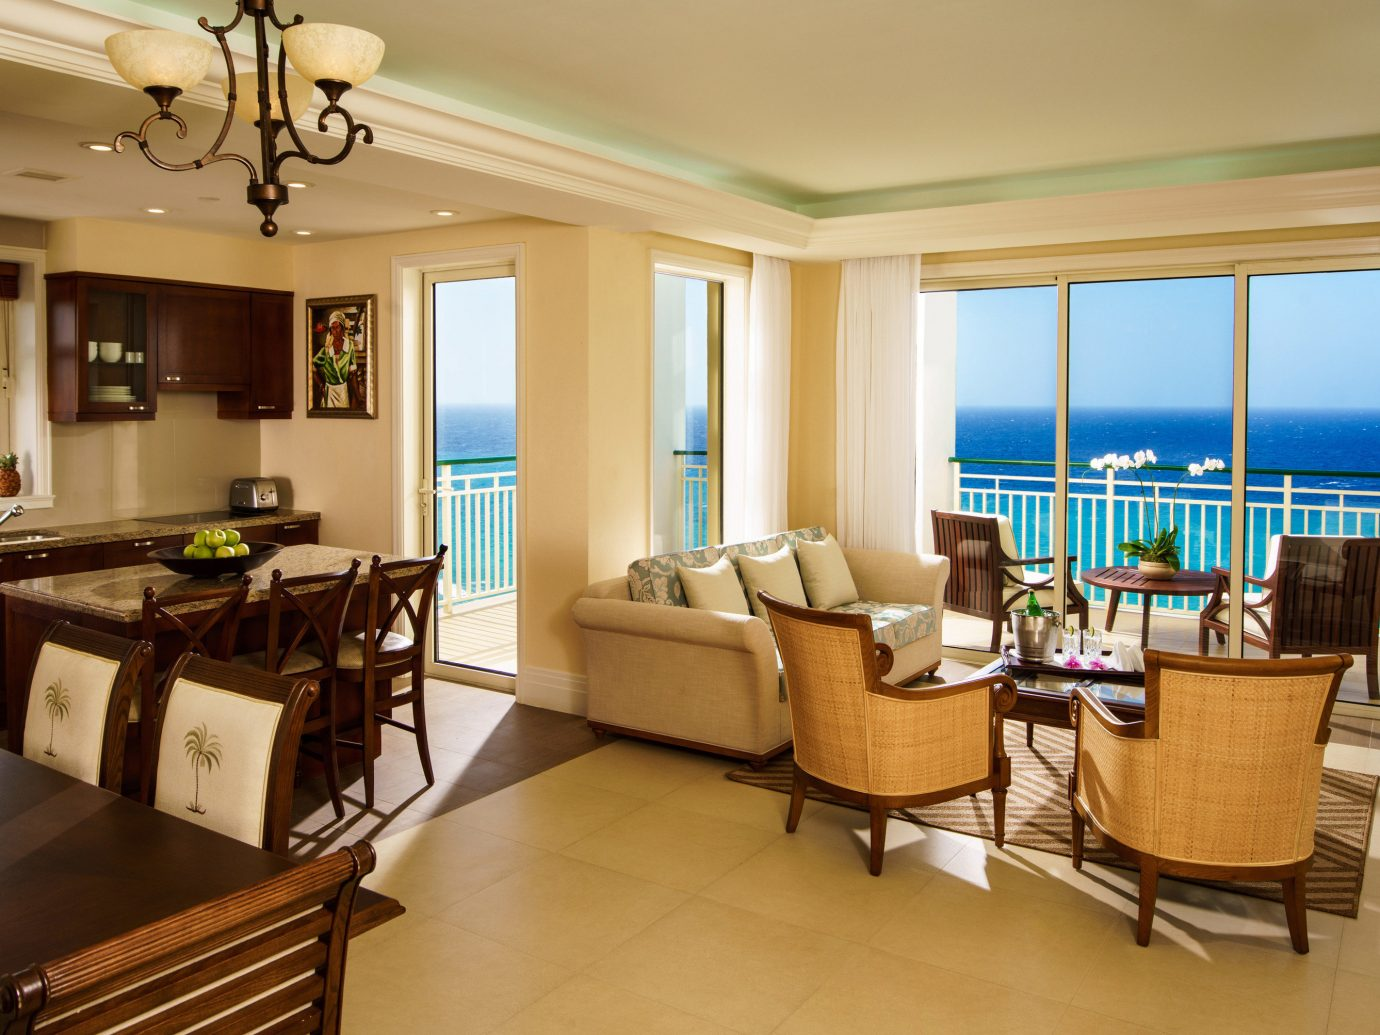 All-Inclusive Resorts caribbean Family Travel Hotels indoor floor ceiling window wall room Living property living room interior design furniture real estate estate Suite apartment penthouse apartment condominium nice flooring wood Bedroom area several Island